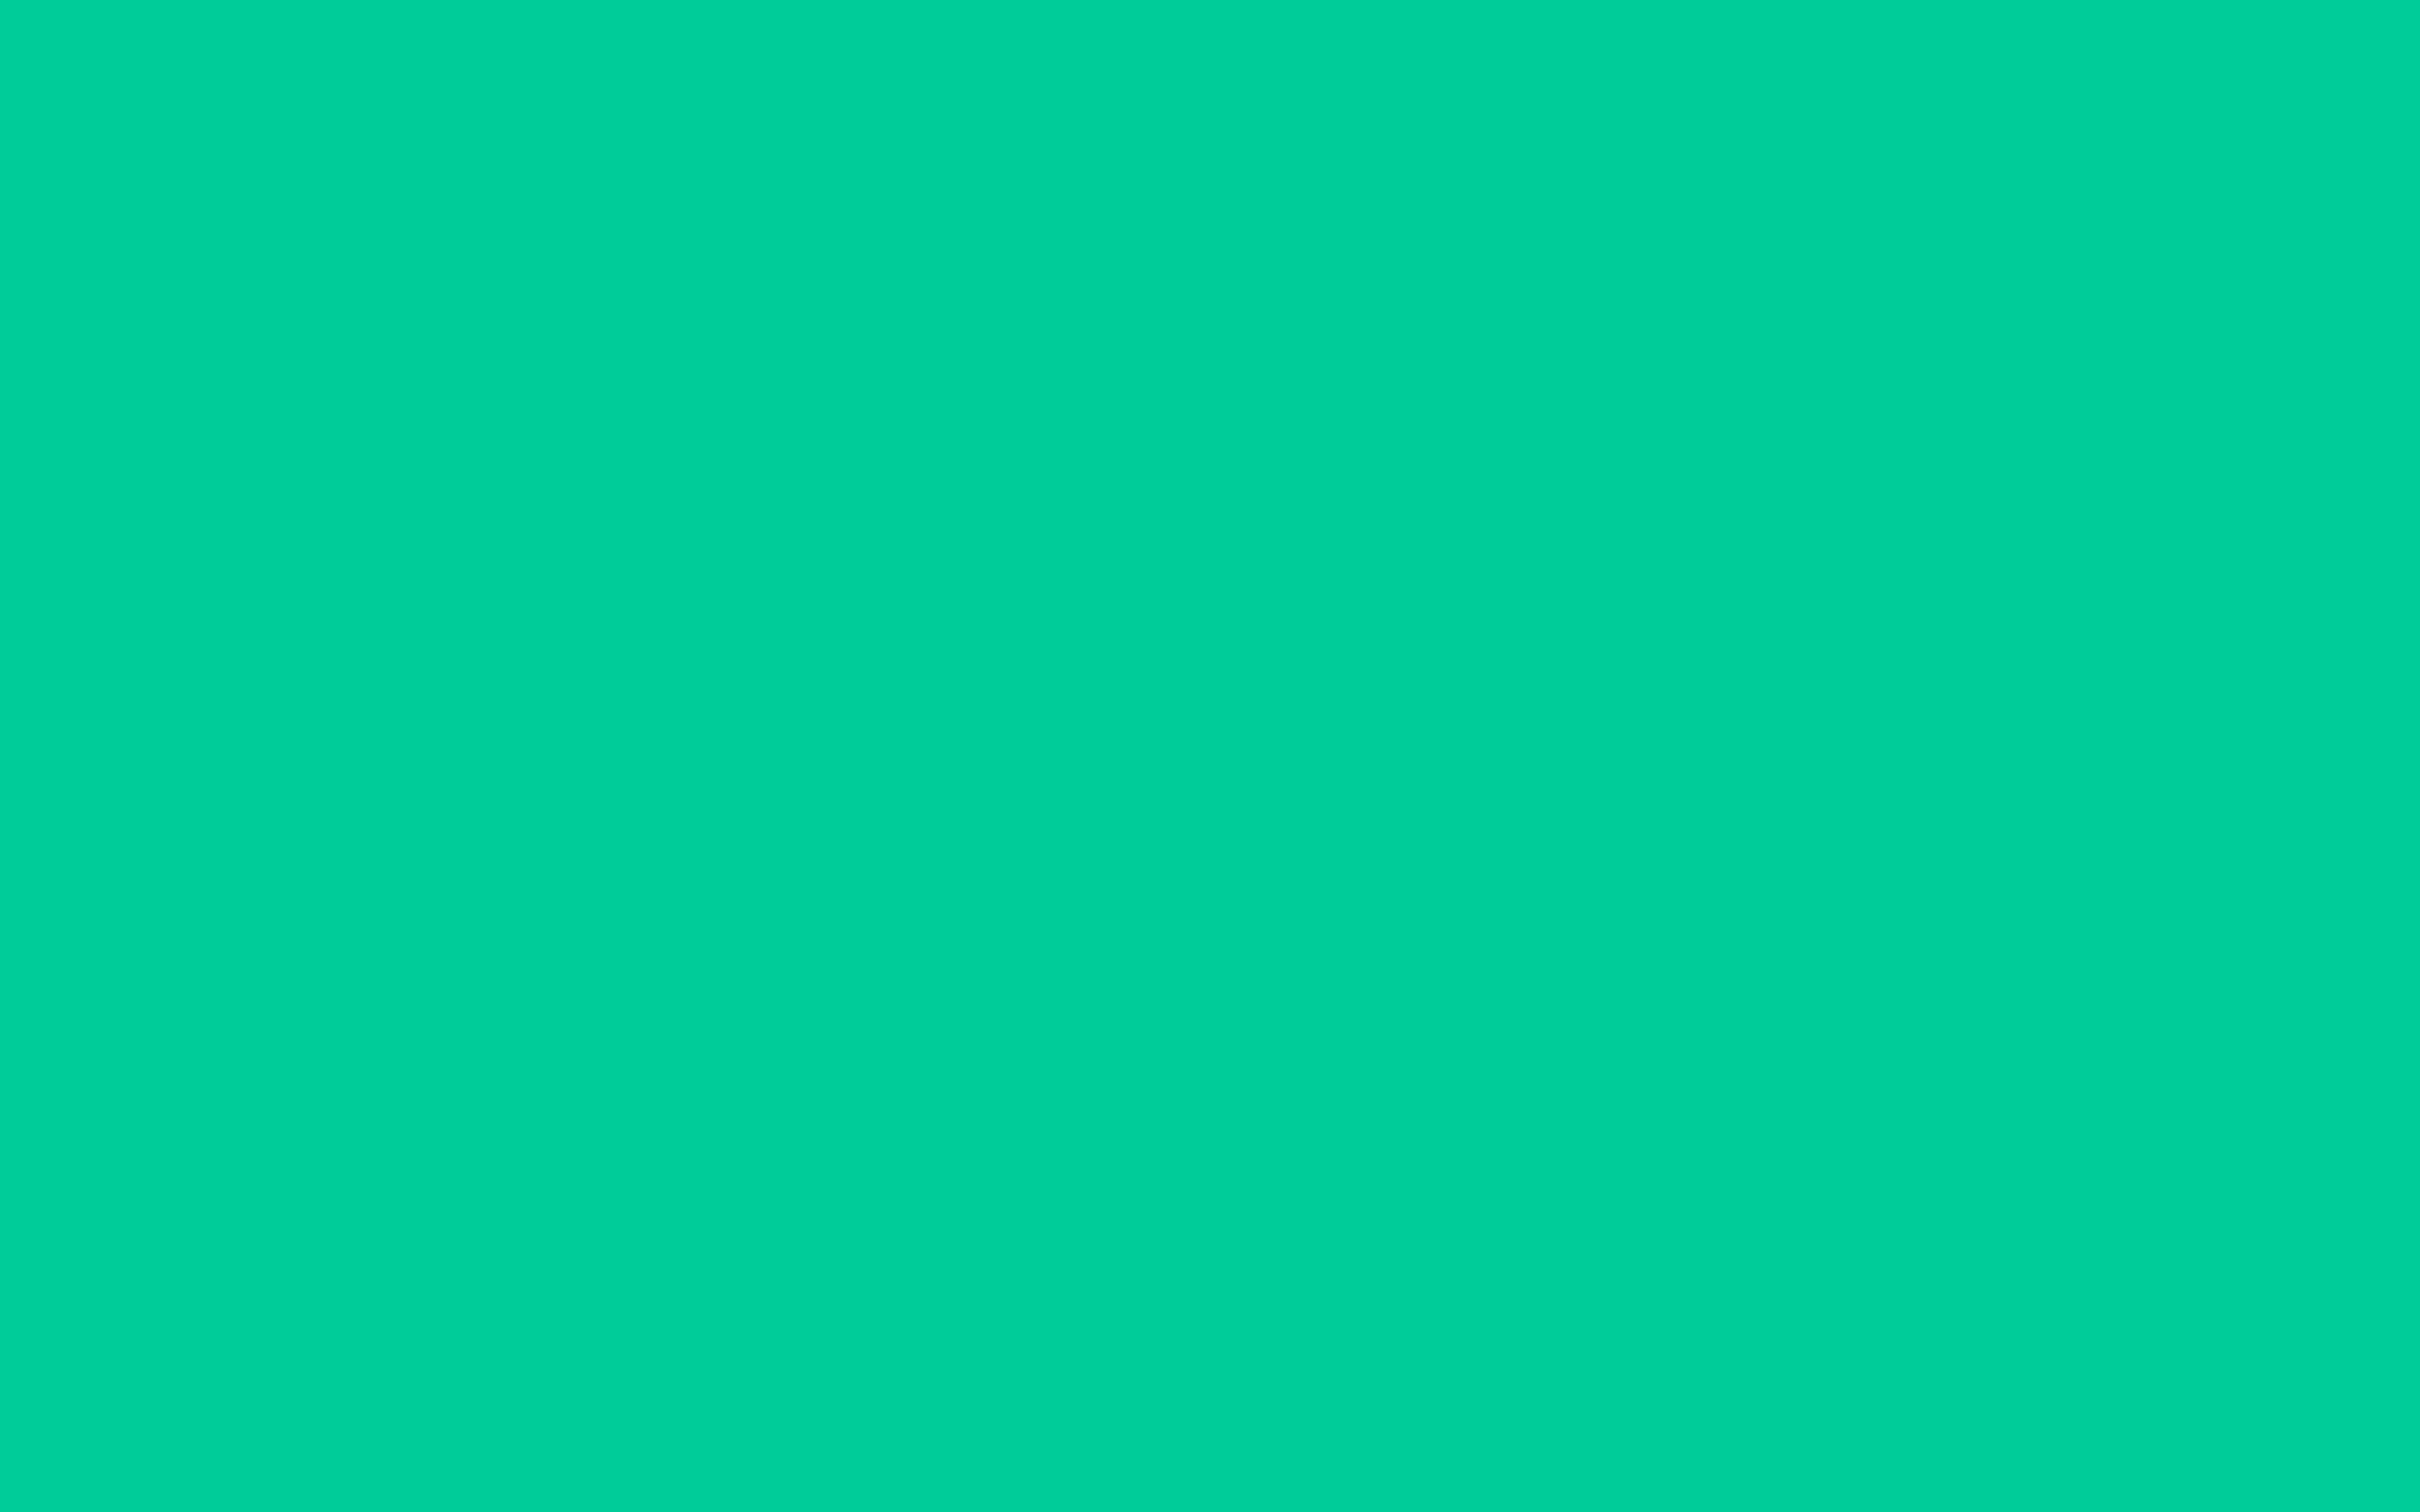 2560x1600 Caribbean Green Solid Color Background